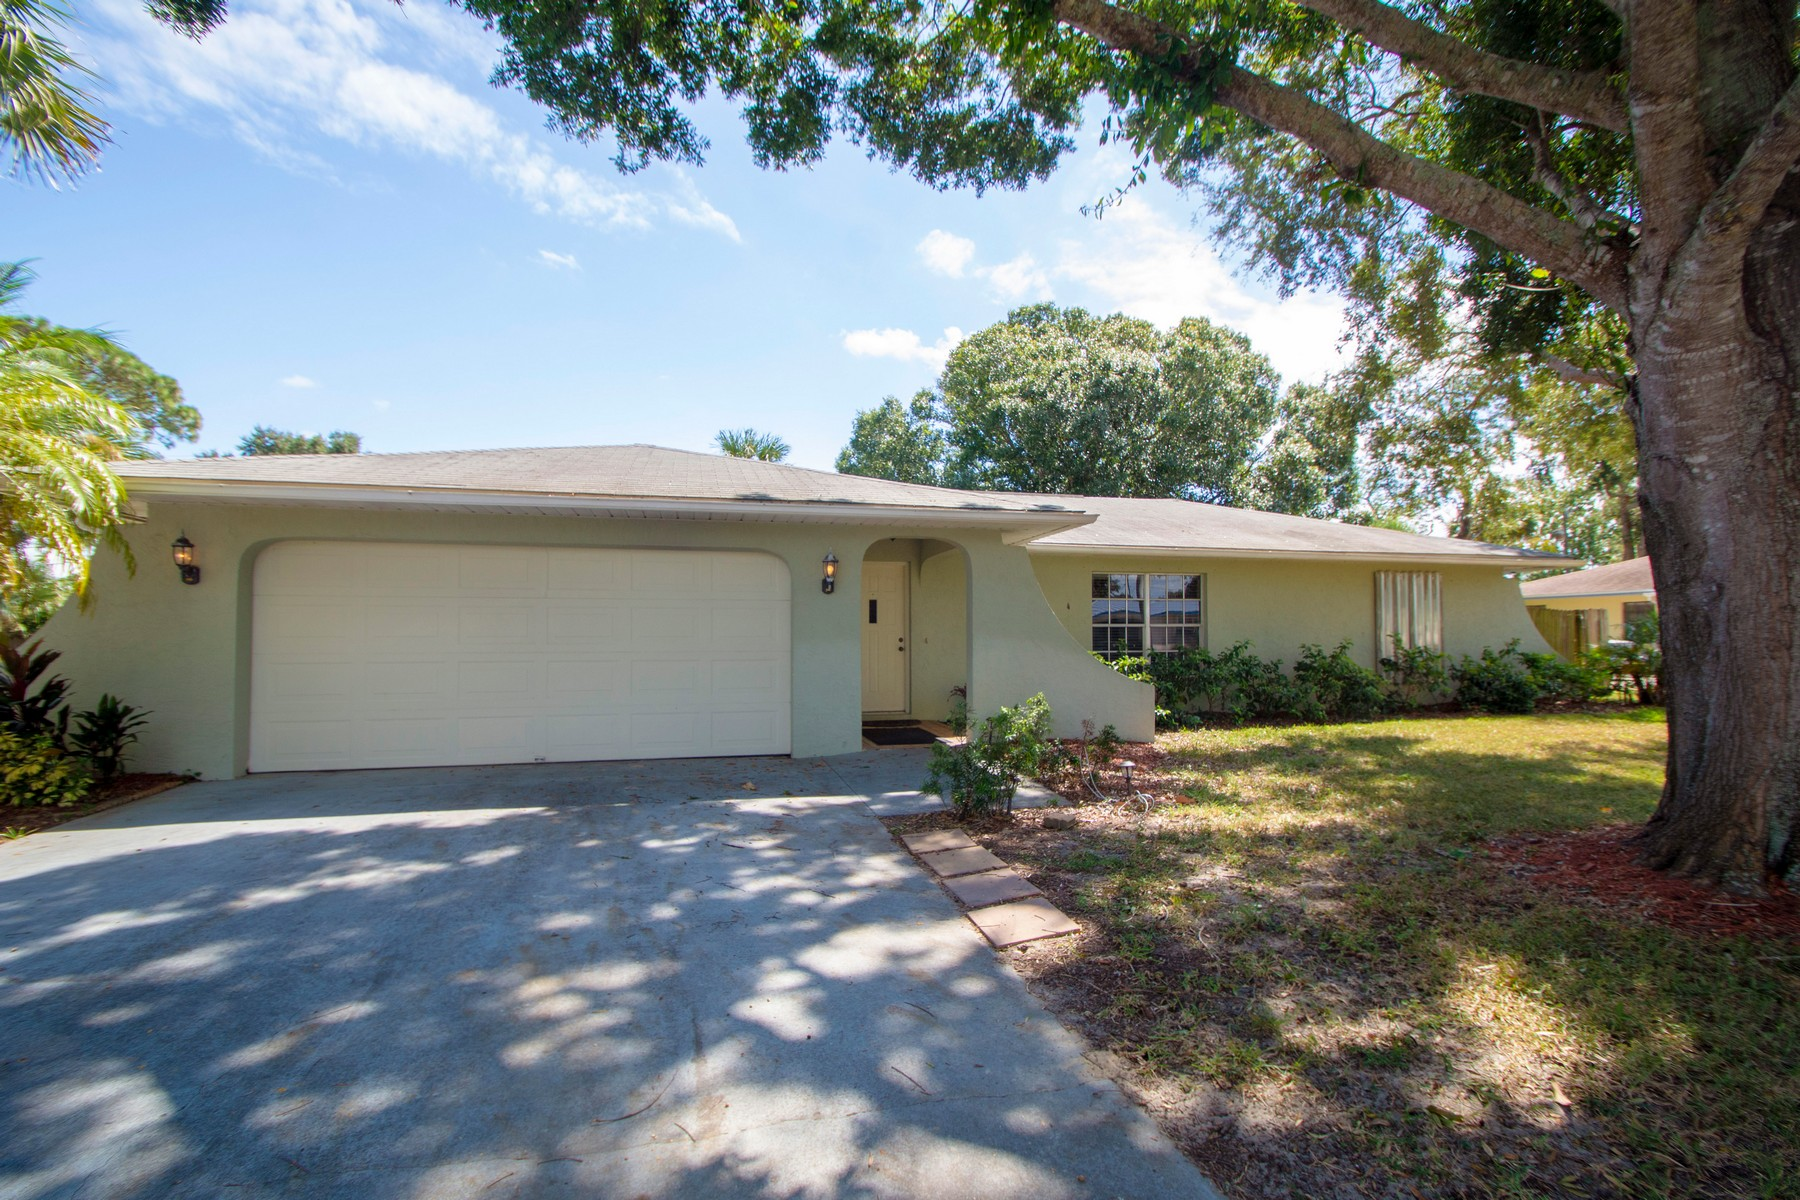 Lovely Four Bedroom Home on One Third Acre 256 15th Avenue Vero Beach, Florida 32962 Vereinigte Staaten